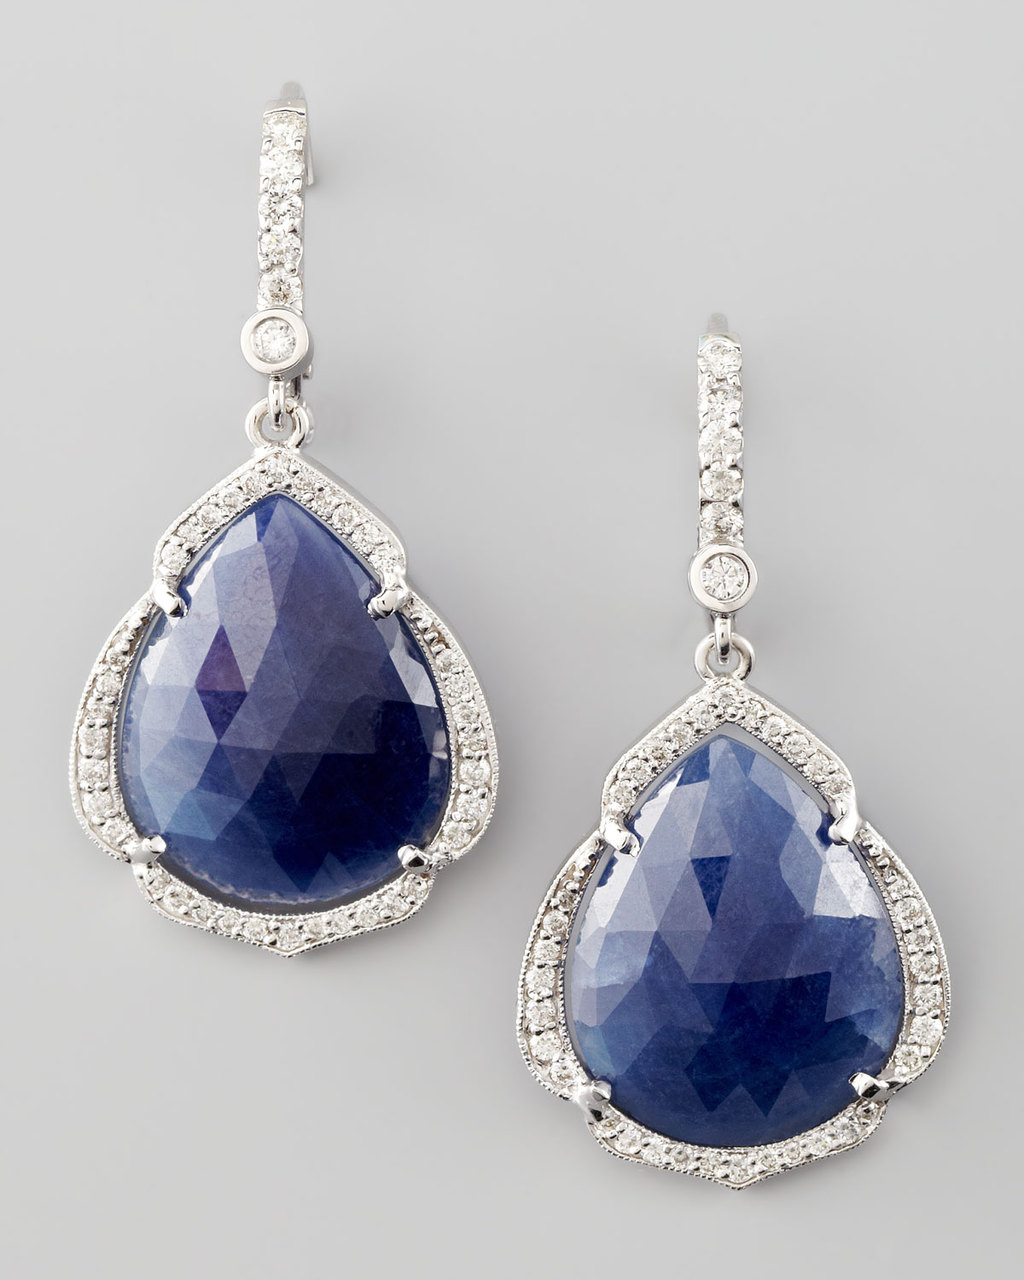 wedding splurge top 10 for fall 2012 something blue bridal earrings